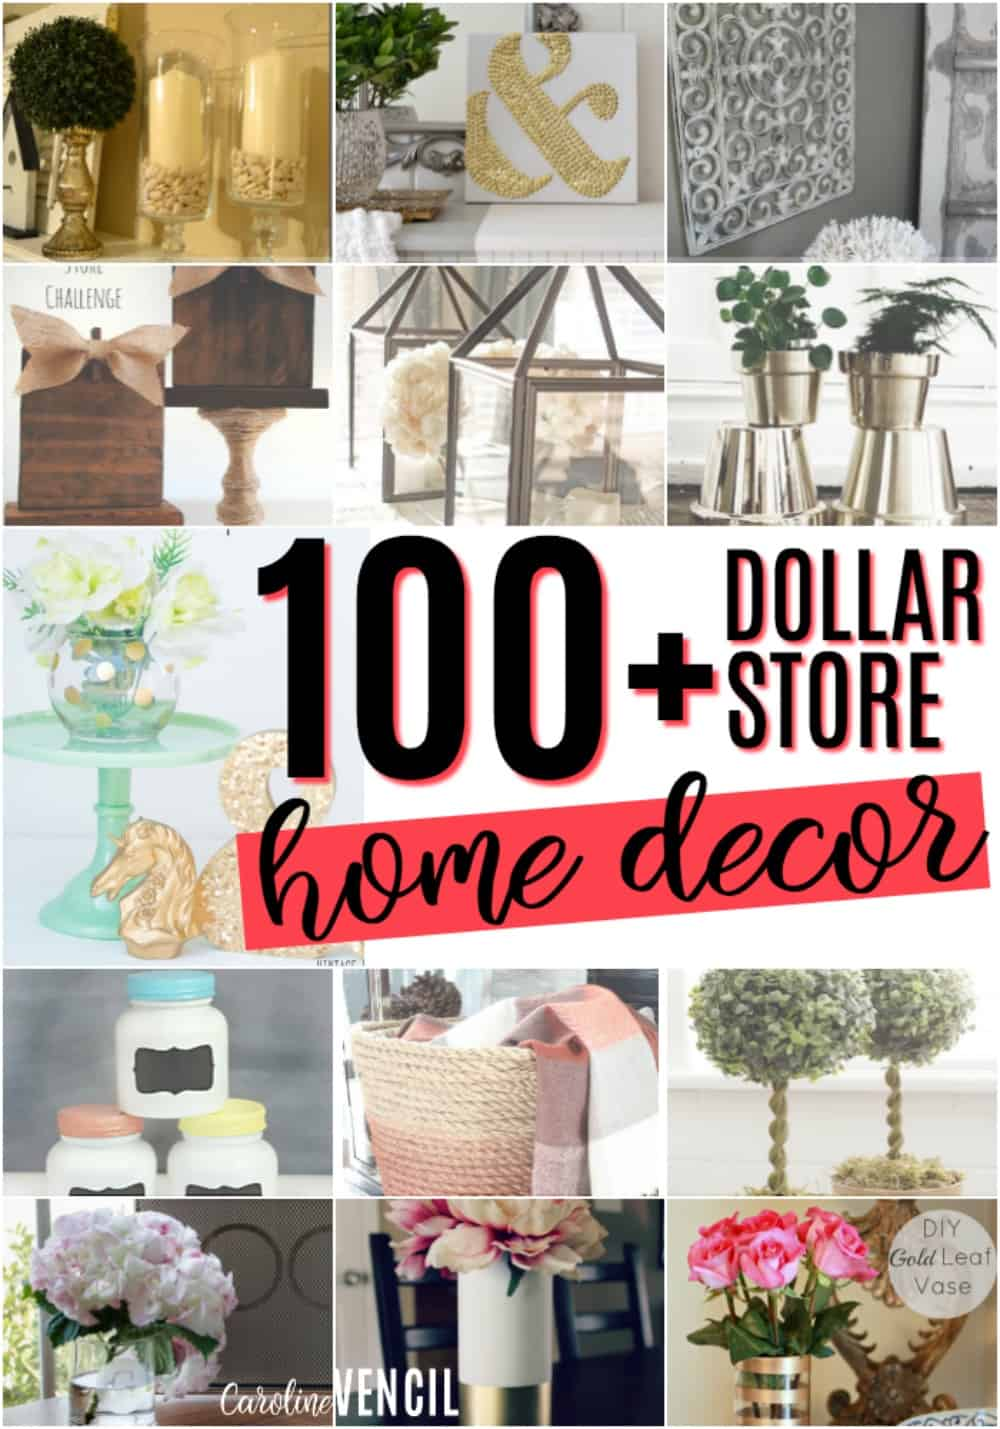 These Dollar Store Decor Hacks Are THE BEST! Iu0027m So Glad I Found